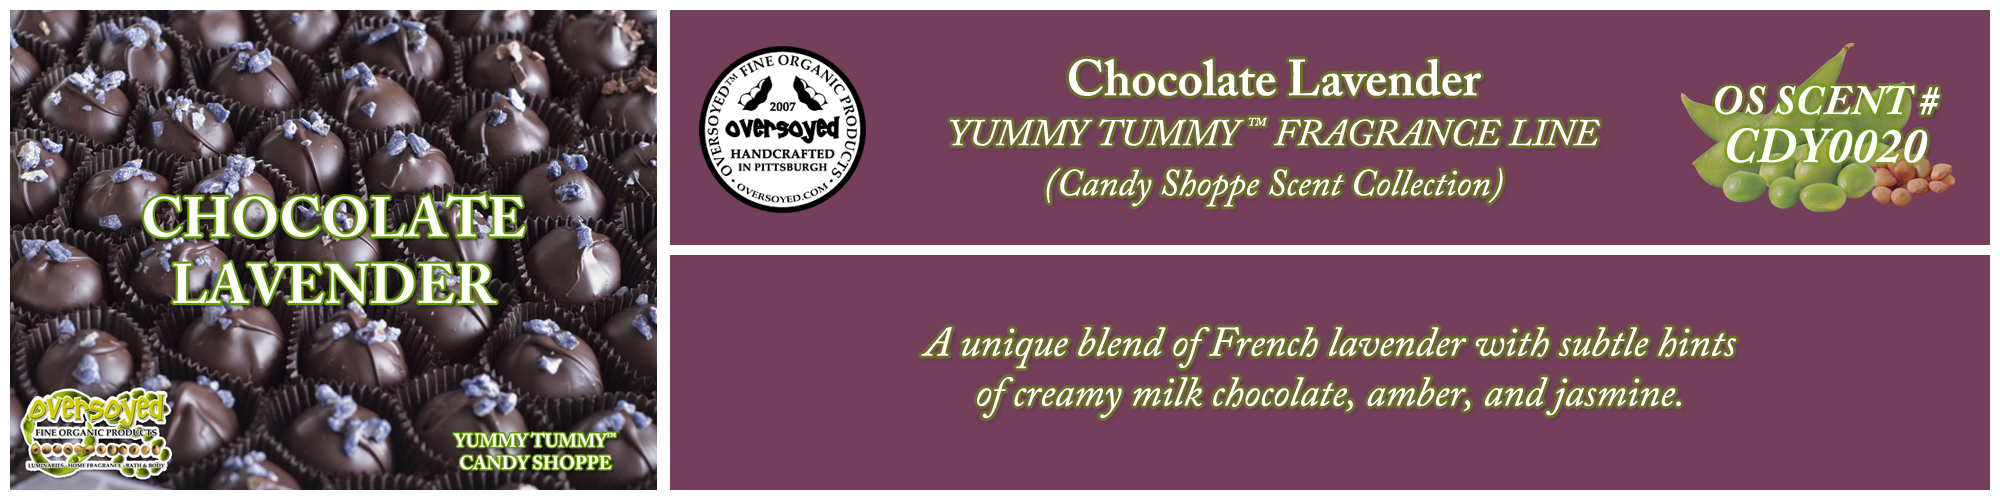 Chocolate Lavender Handcrafted Products Collection